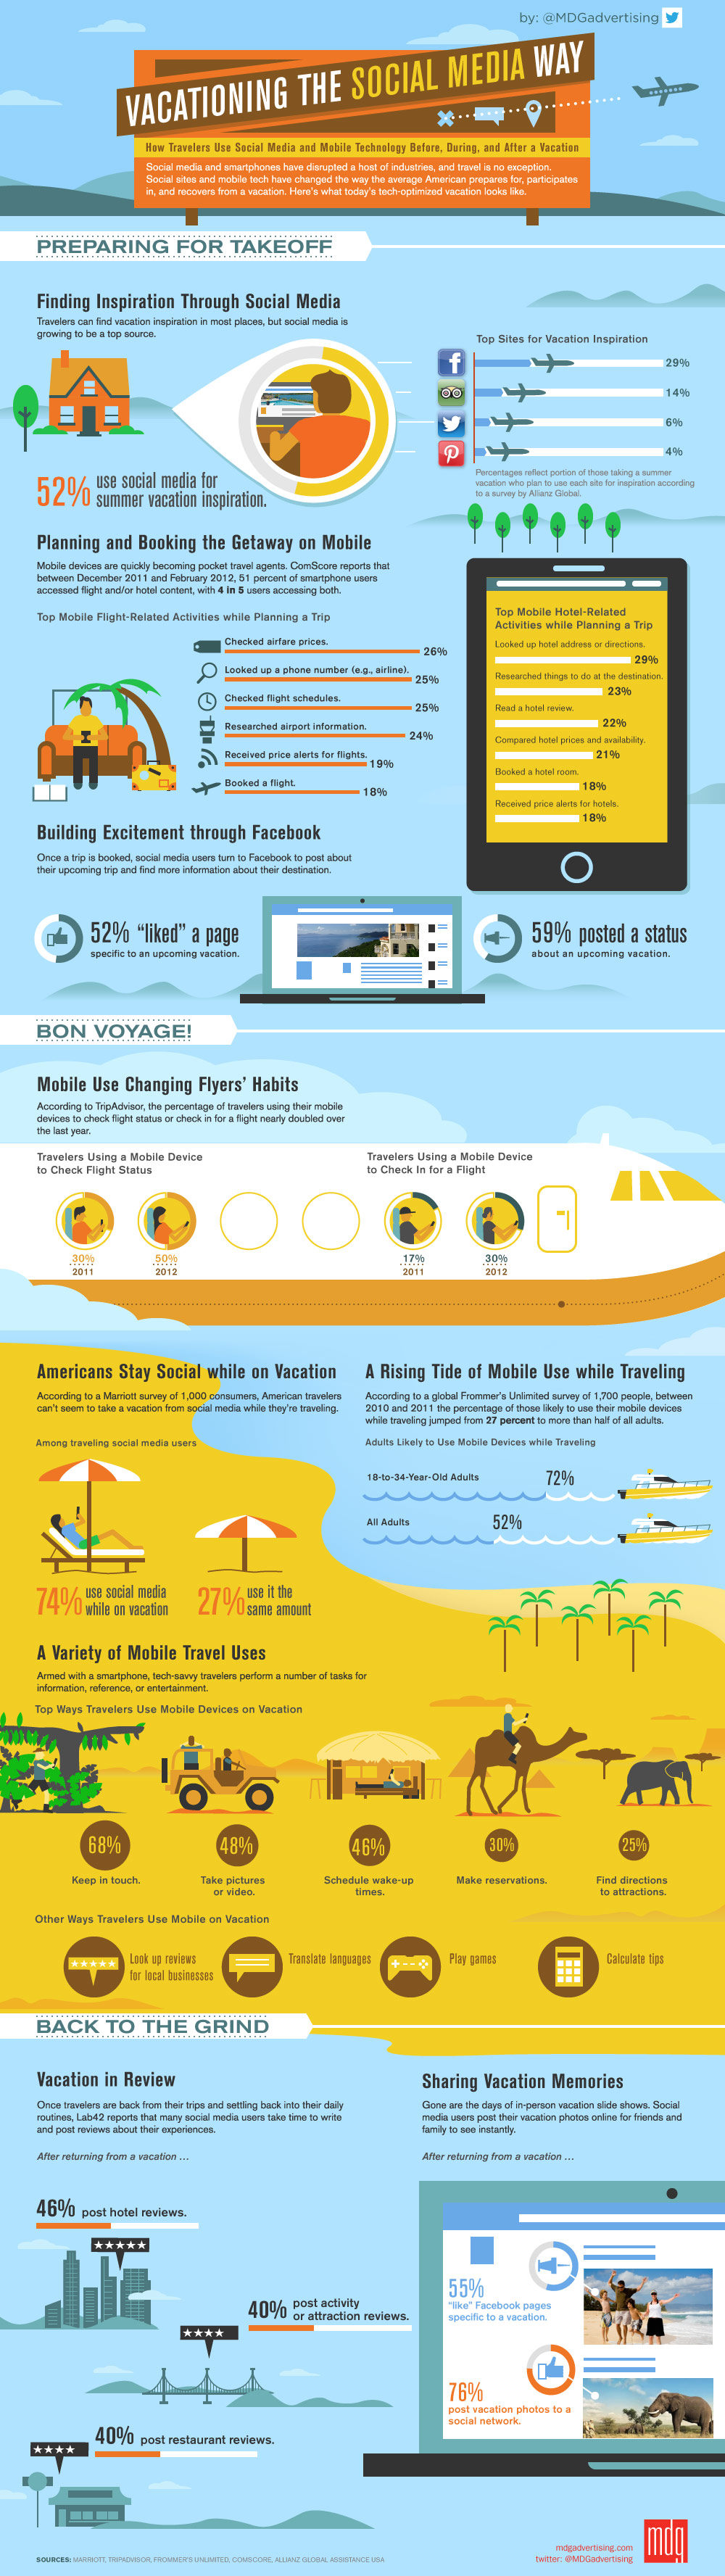 How Travelers Use Social Media to Improve Their Vacation [Infographic]